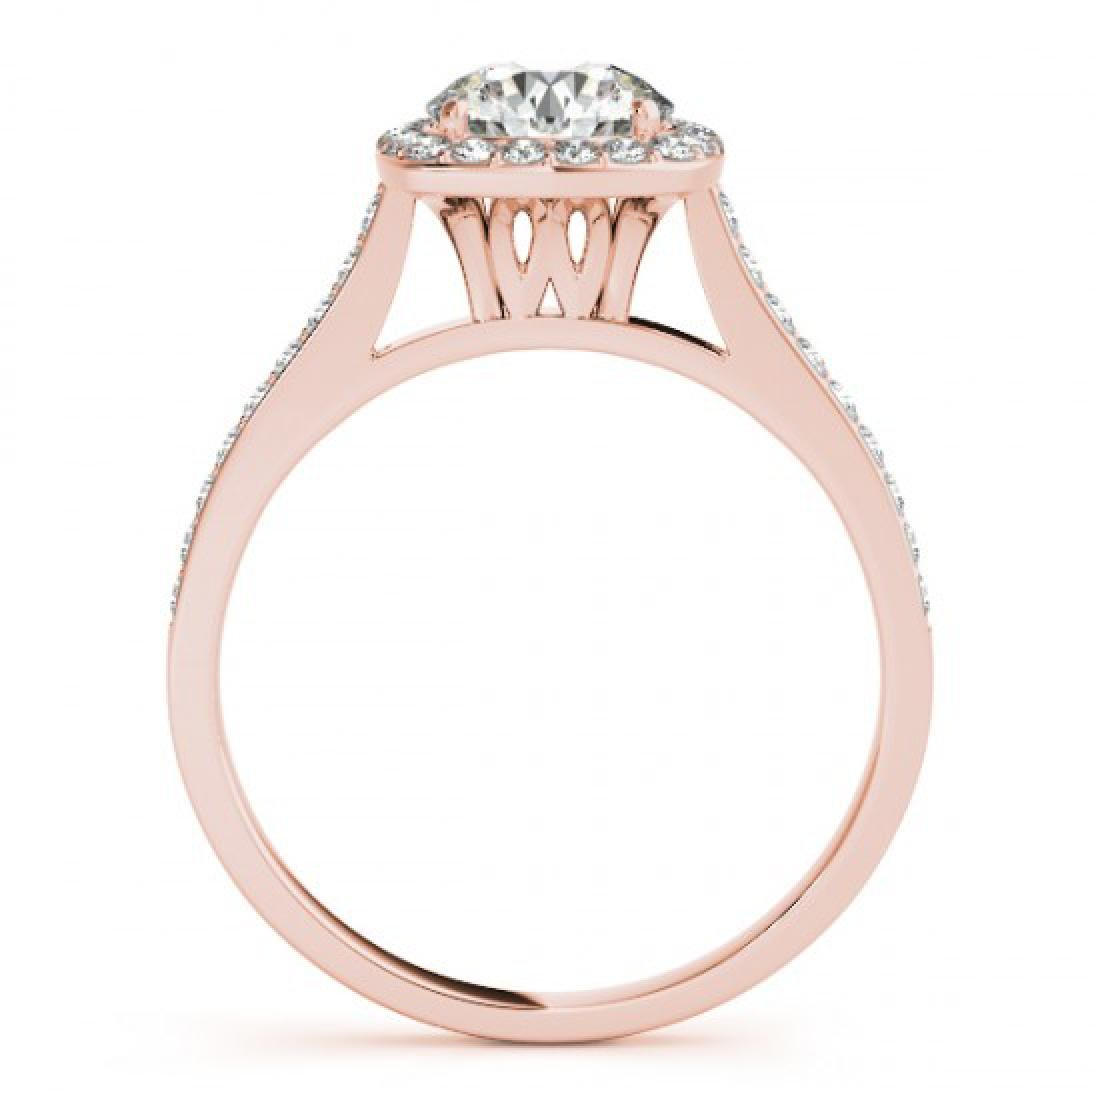 1.4 CTW Certified VS/SI Diamond Solitaire Halo Ring 14K - 2